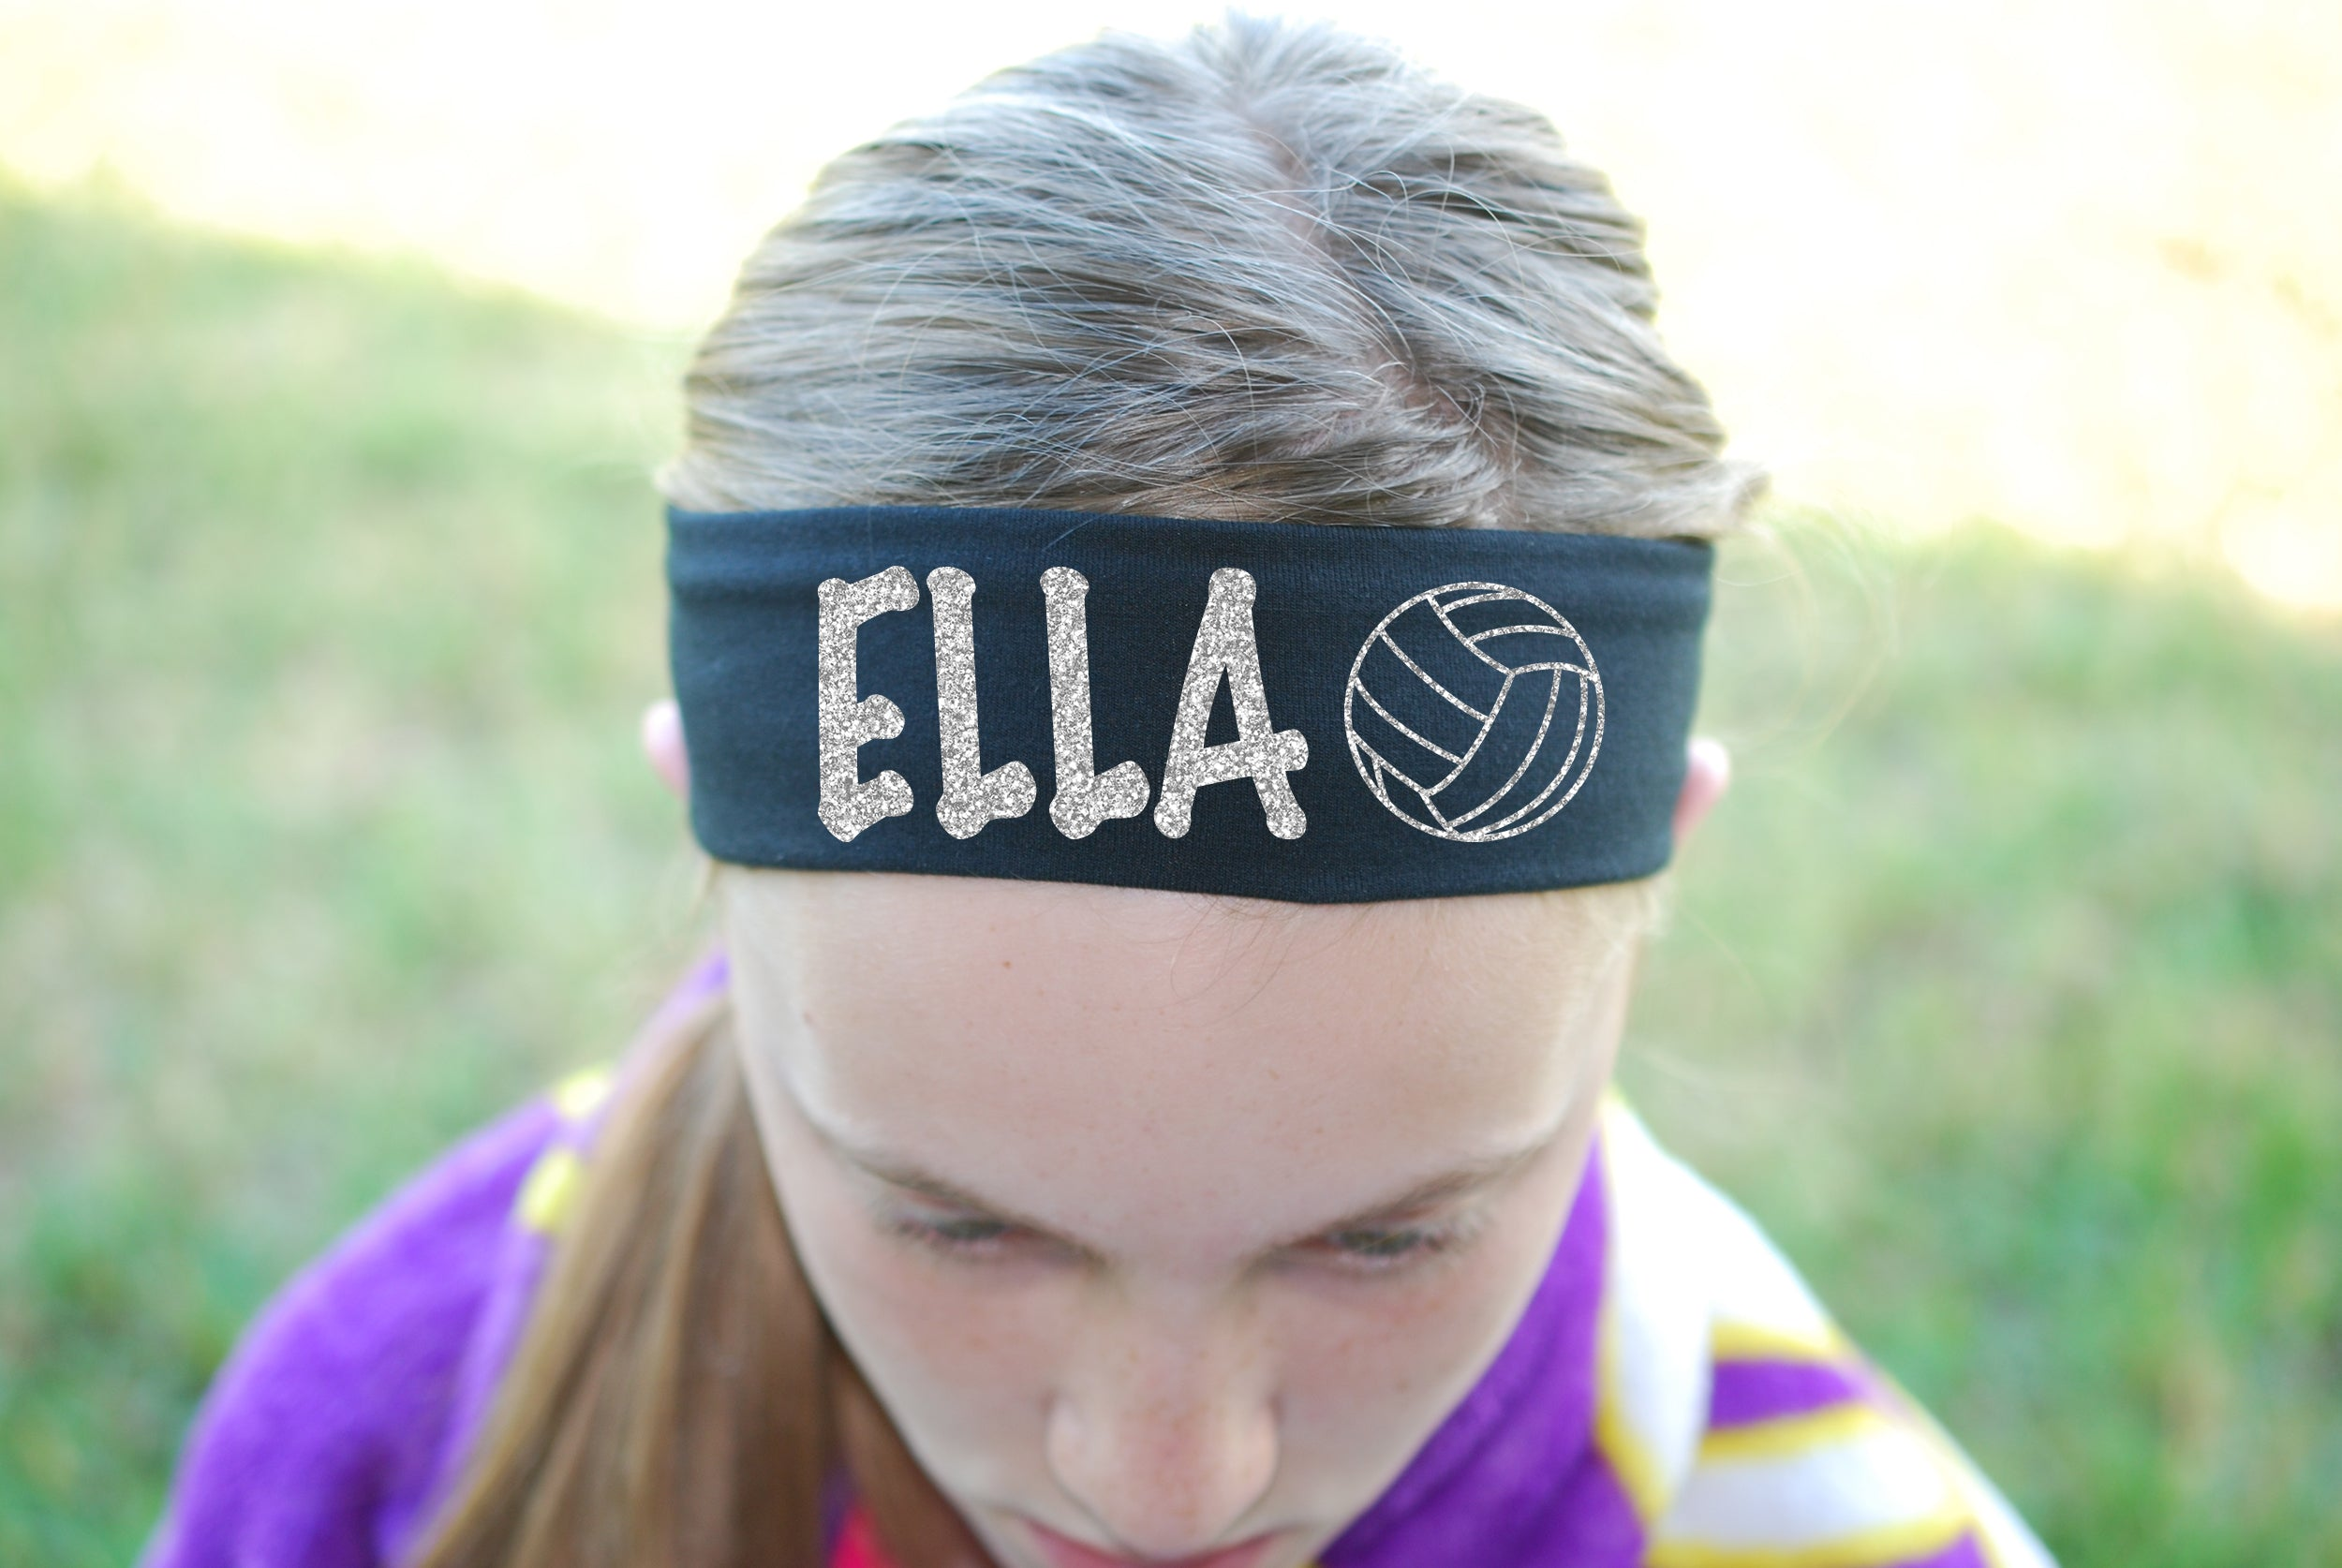 Custom Volleyball Headband (Cotton/Lycra) - Sparkle Letters!